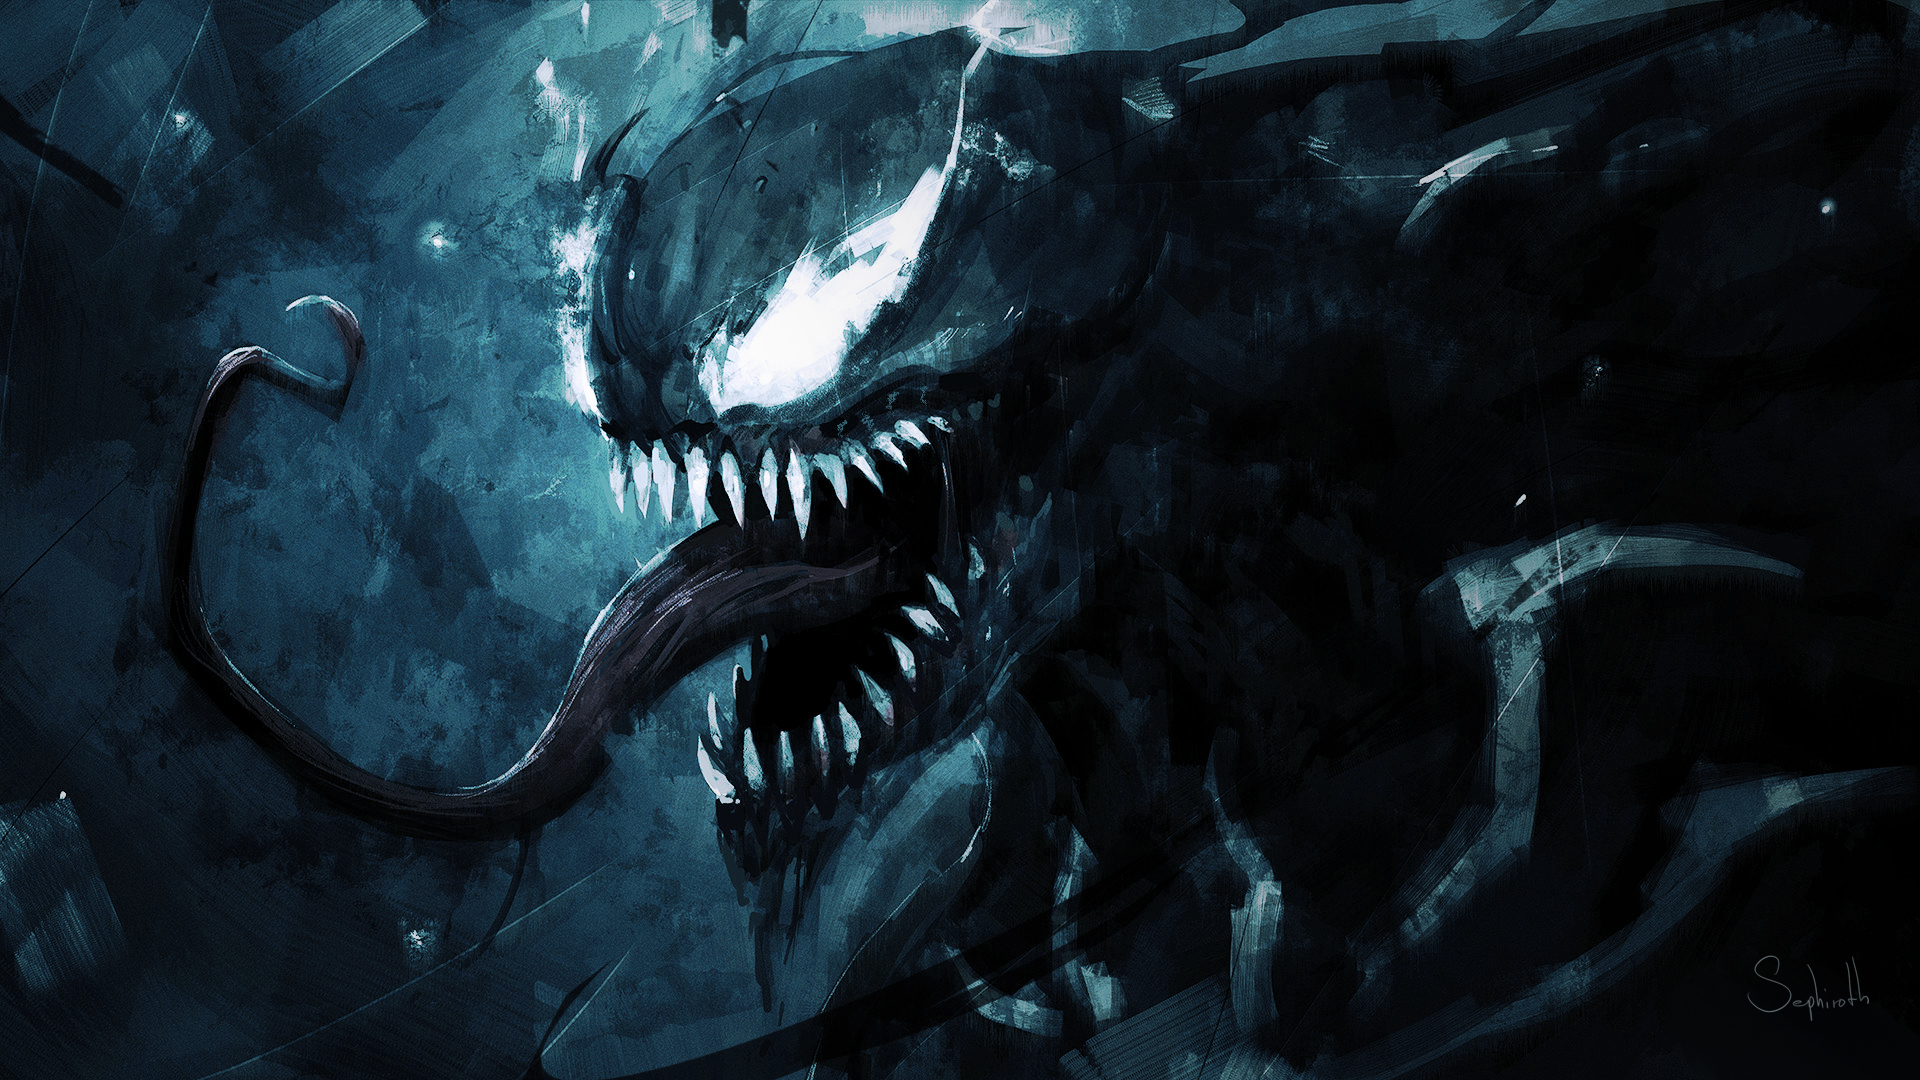 Free Download 3d Desktop Wallpapers Backgrounds Wallpaper Marvel Comics Venom Art Desktop Picture Amp Hd